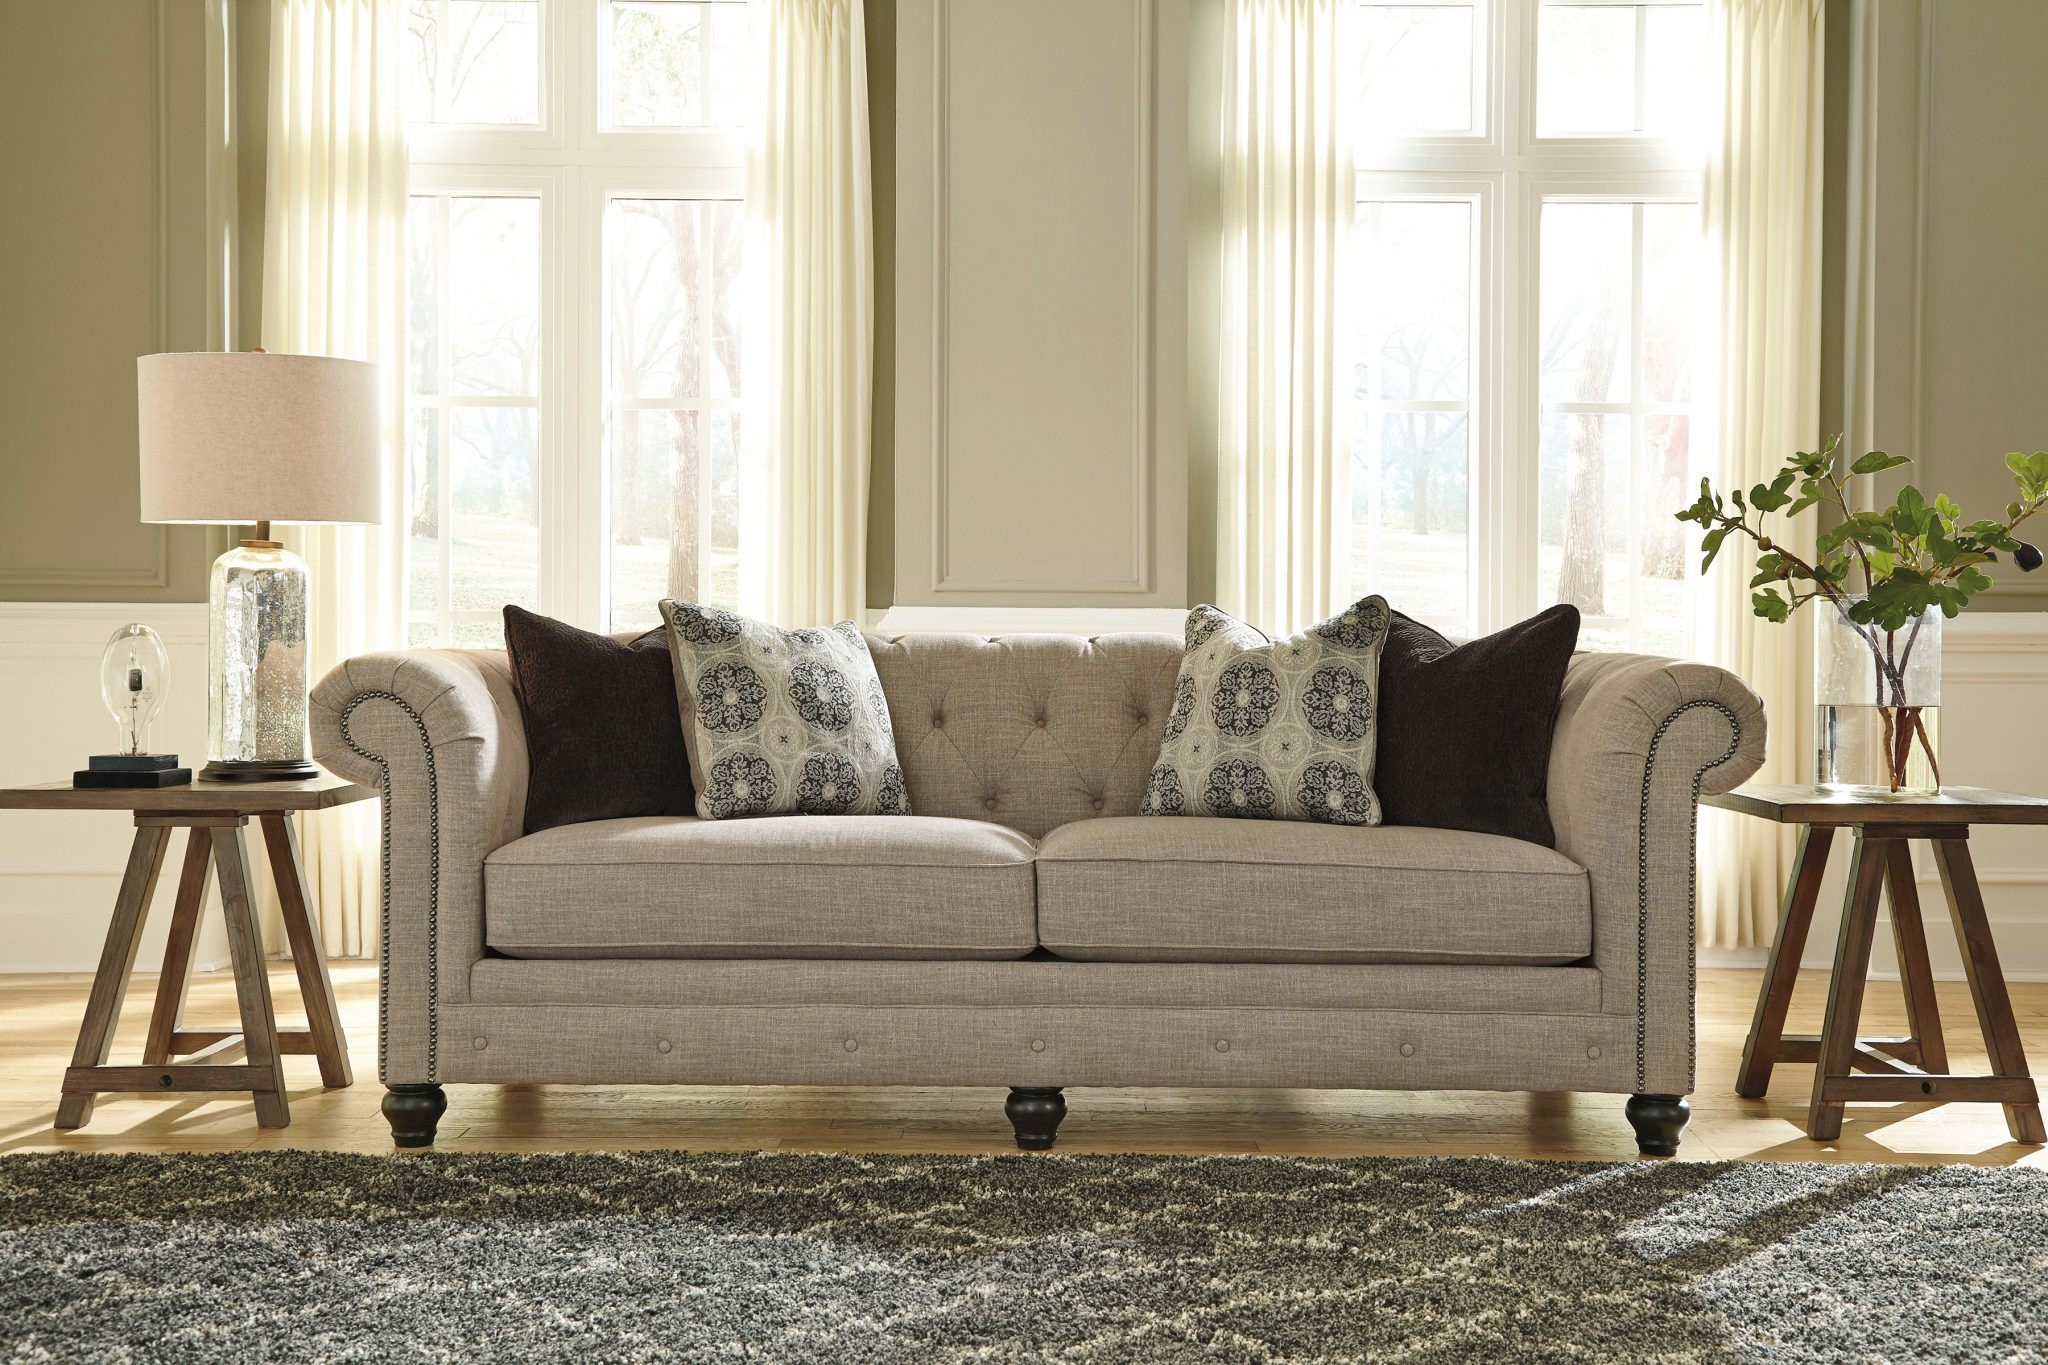 Ashley Furniture Tufted sofa Elegant ashley Furniture Tufted sofa sofa Alluring ashley Furniture Tufted Wallpaper